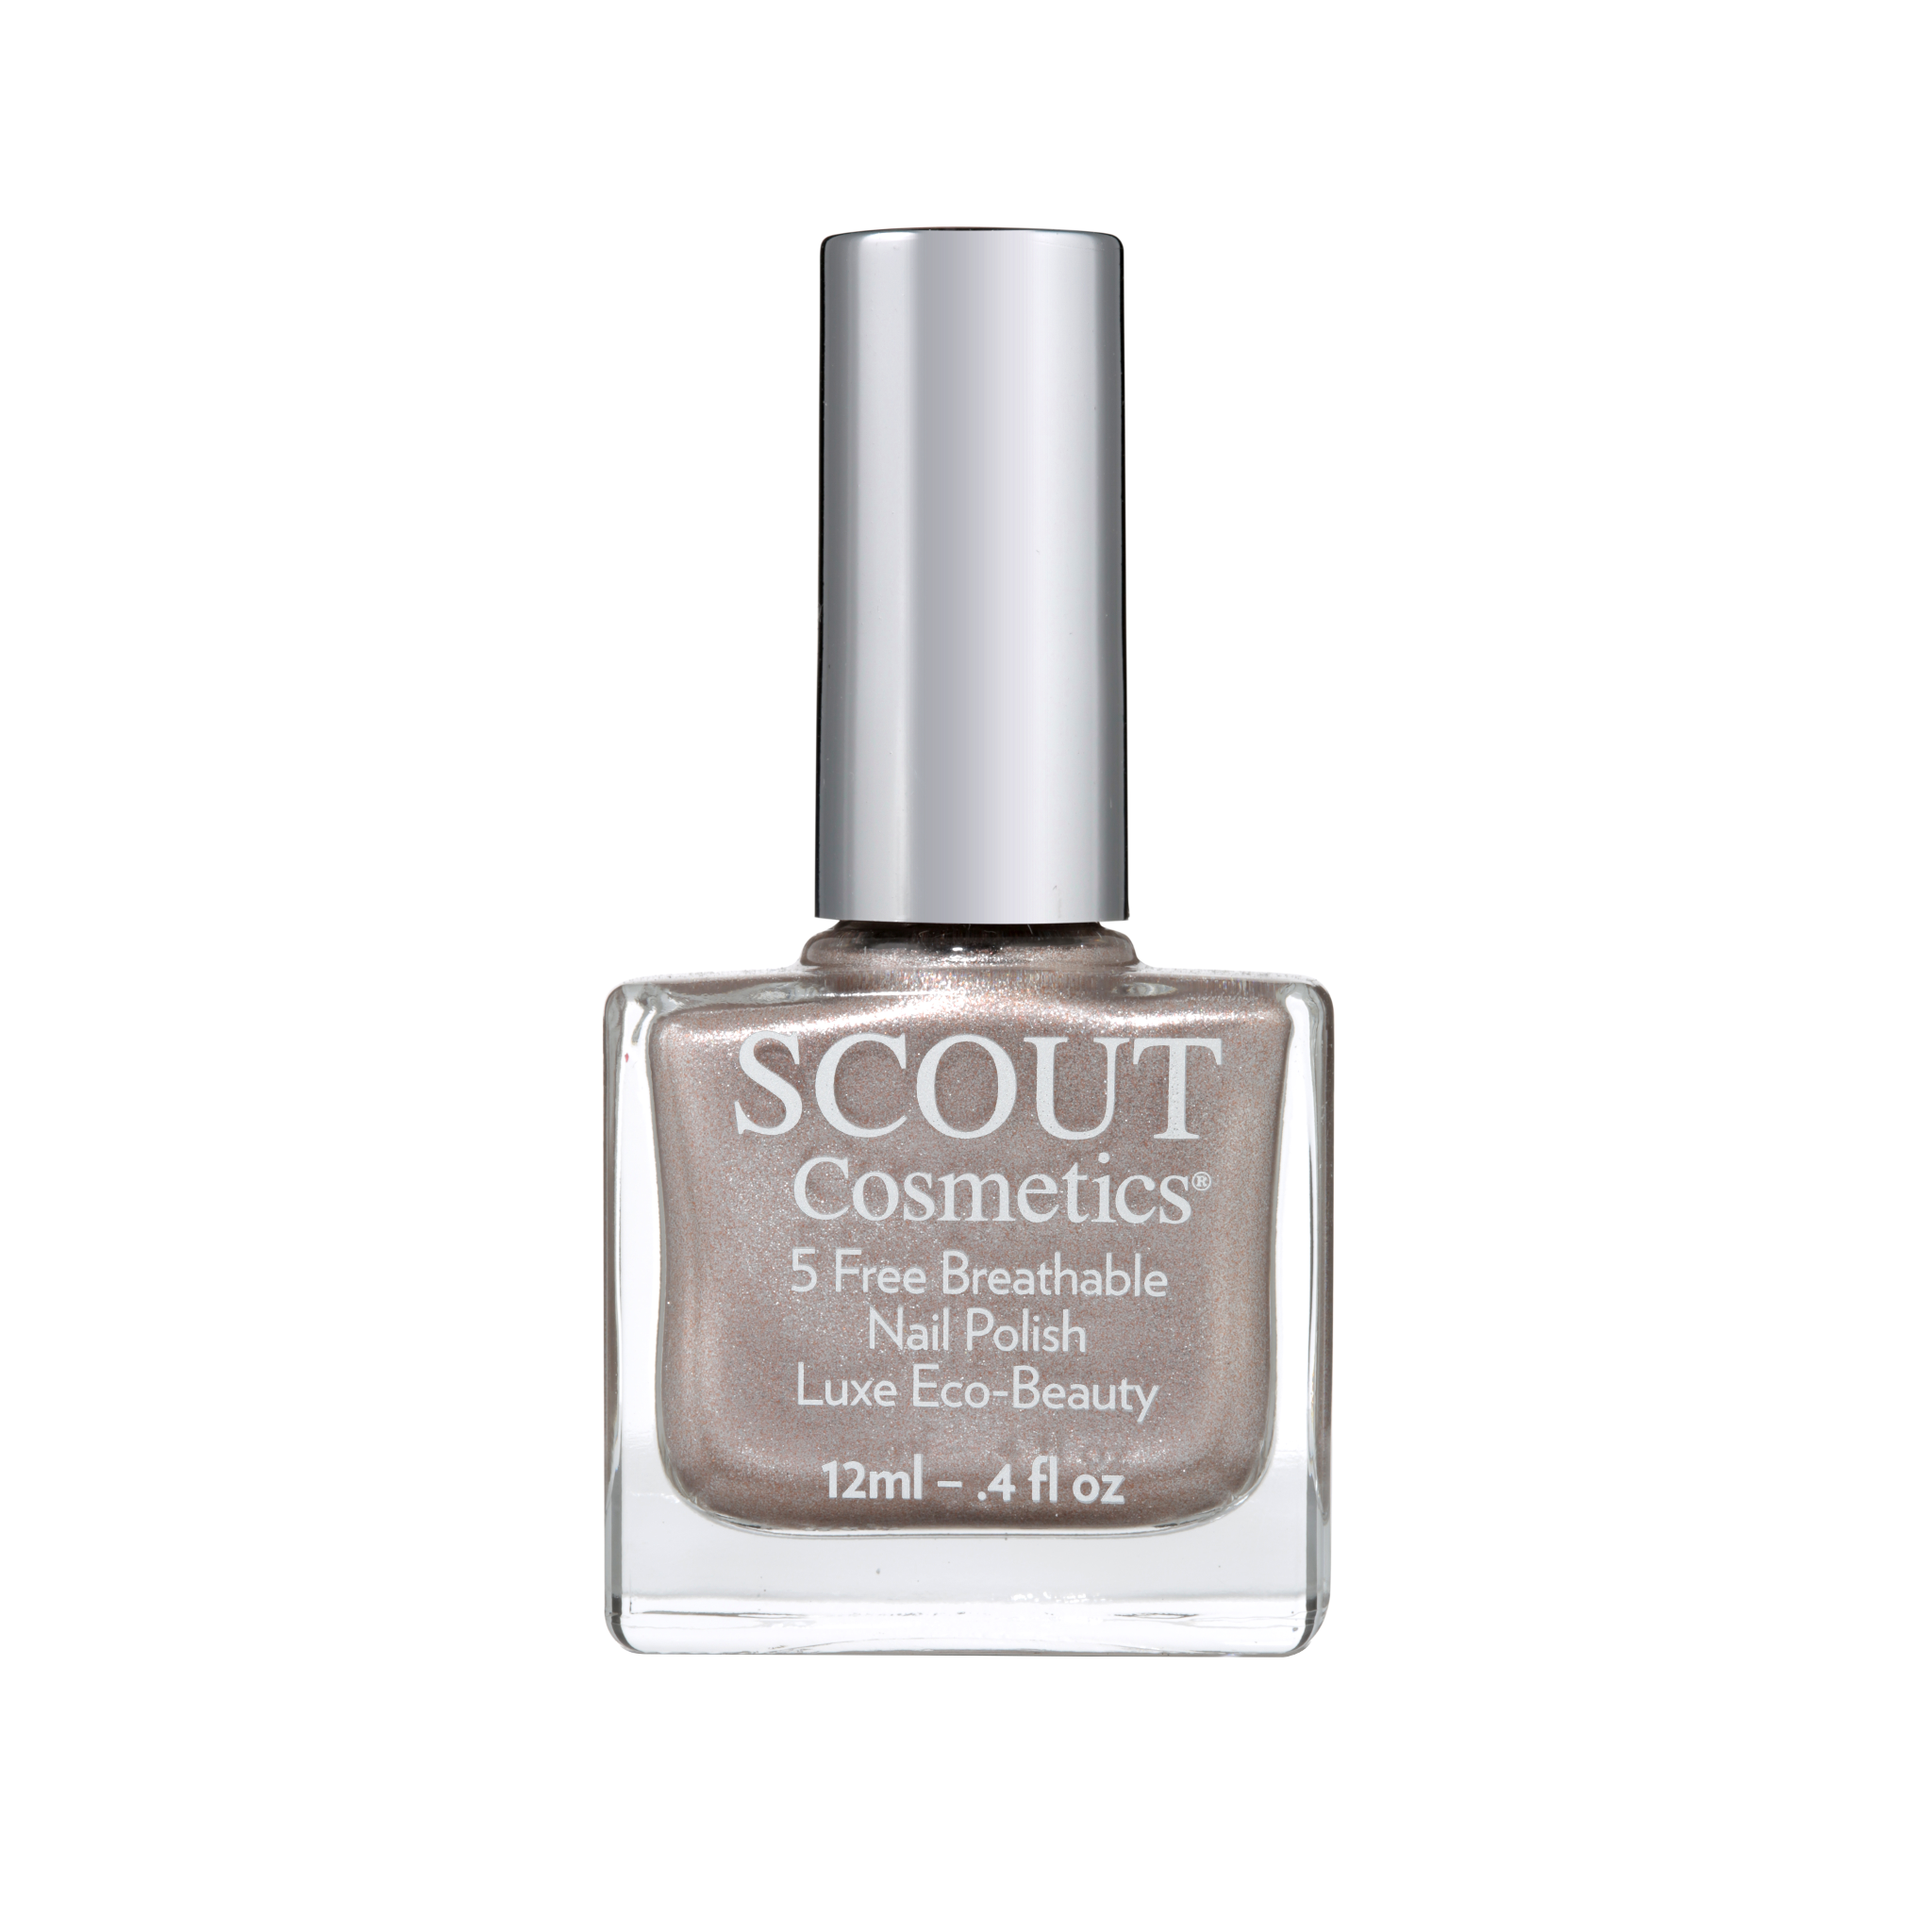 SCOUT Cosmetics Nail Polish - Be My Lover